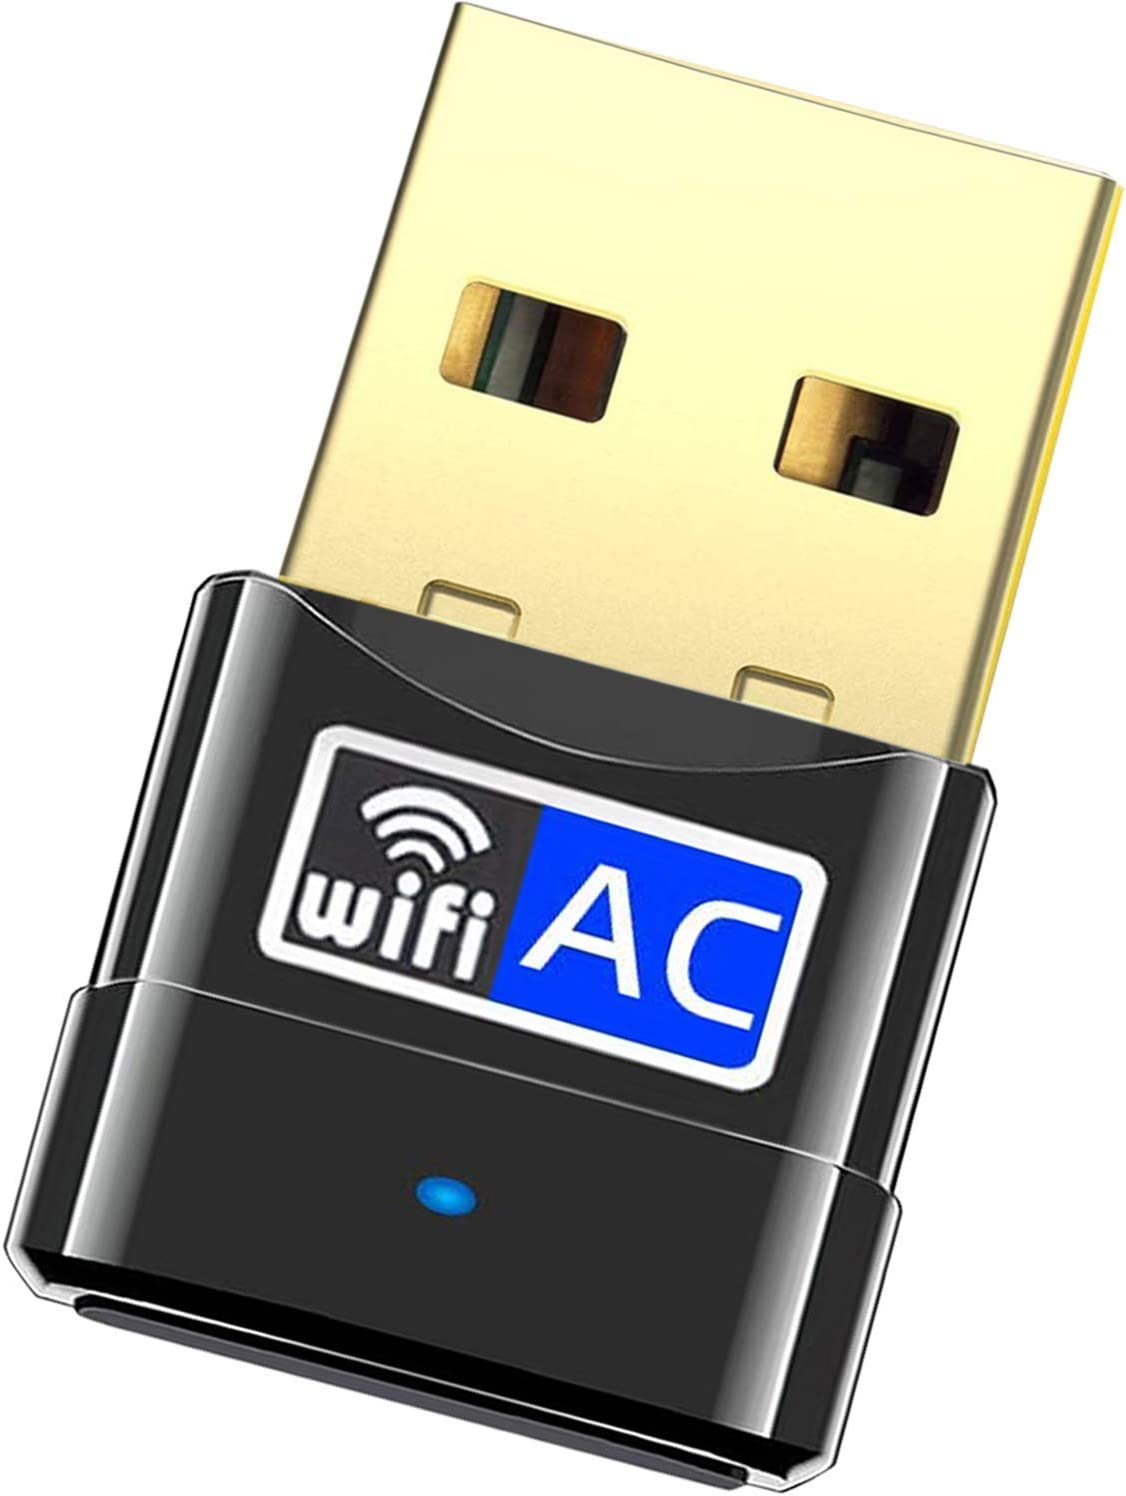 WiFi Adapter for Desktop pc 600Mbps USB WiFi Network Wi-Fi Adapters Dongle Receiver for PC Laptop Dual Band 802.11ac USB WiFi for Windows XP/7/8/10/vista MacOS 10.6-10.14 (All-New USB WiFi Adapter)